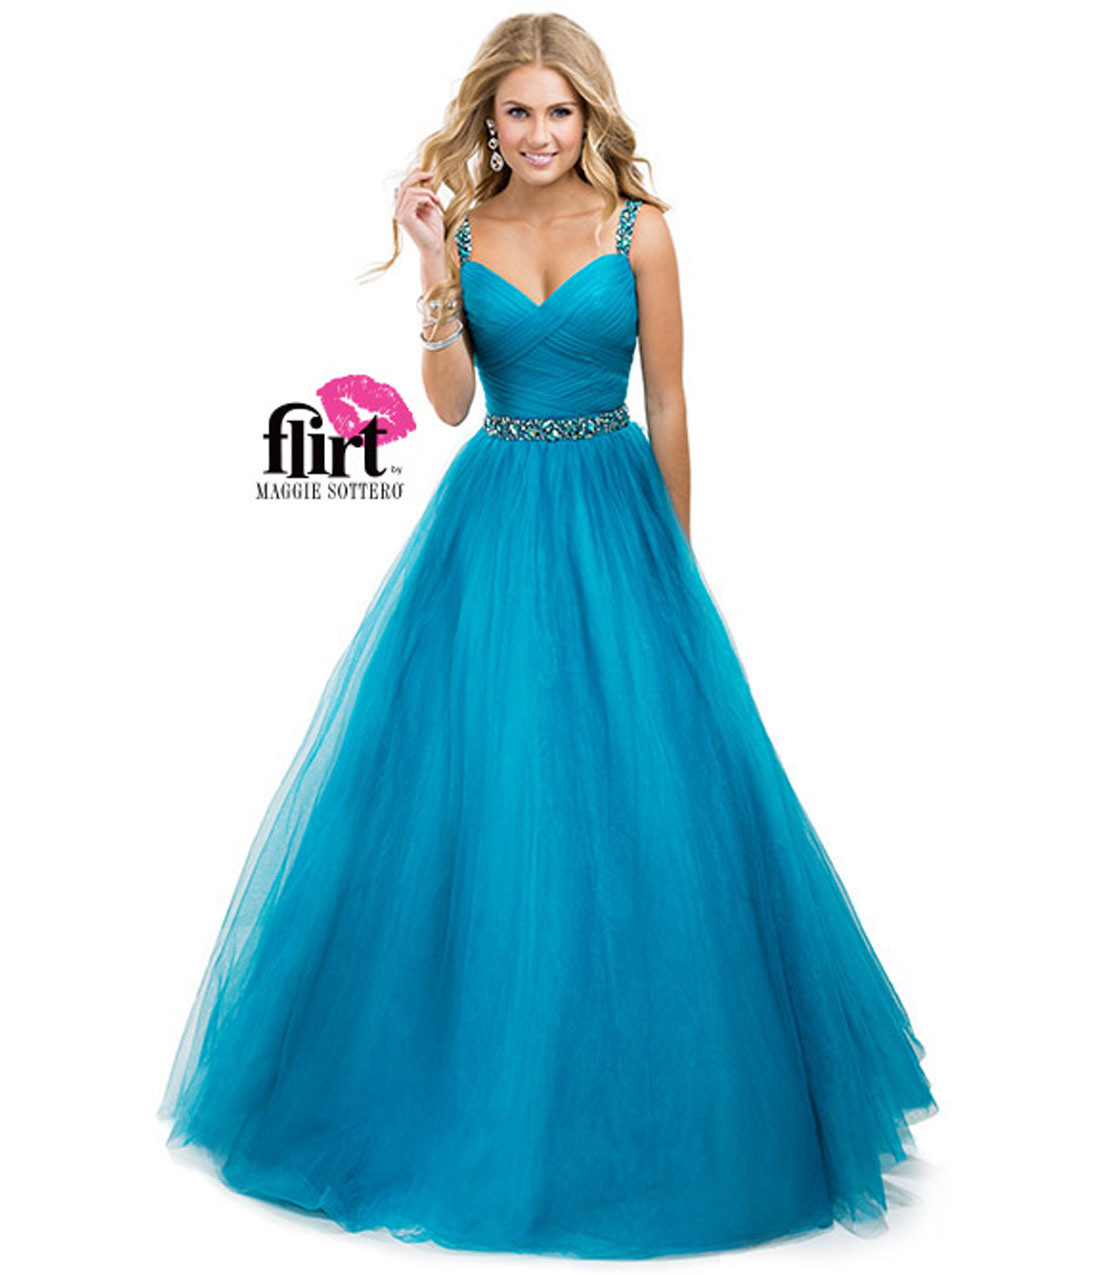 How Much Are Maggie Sottero Prom Dresses - Prom Dresses With Pockets